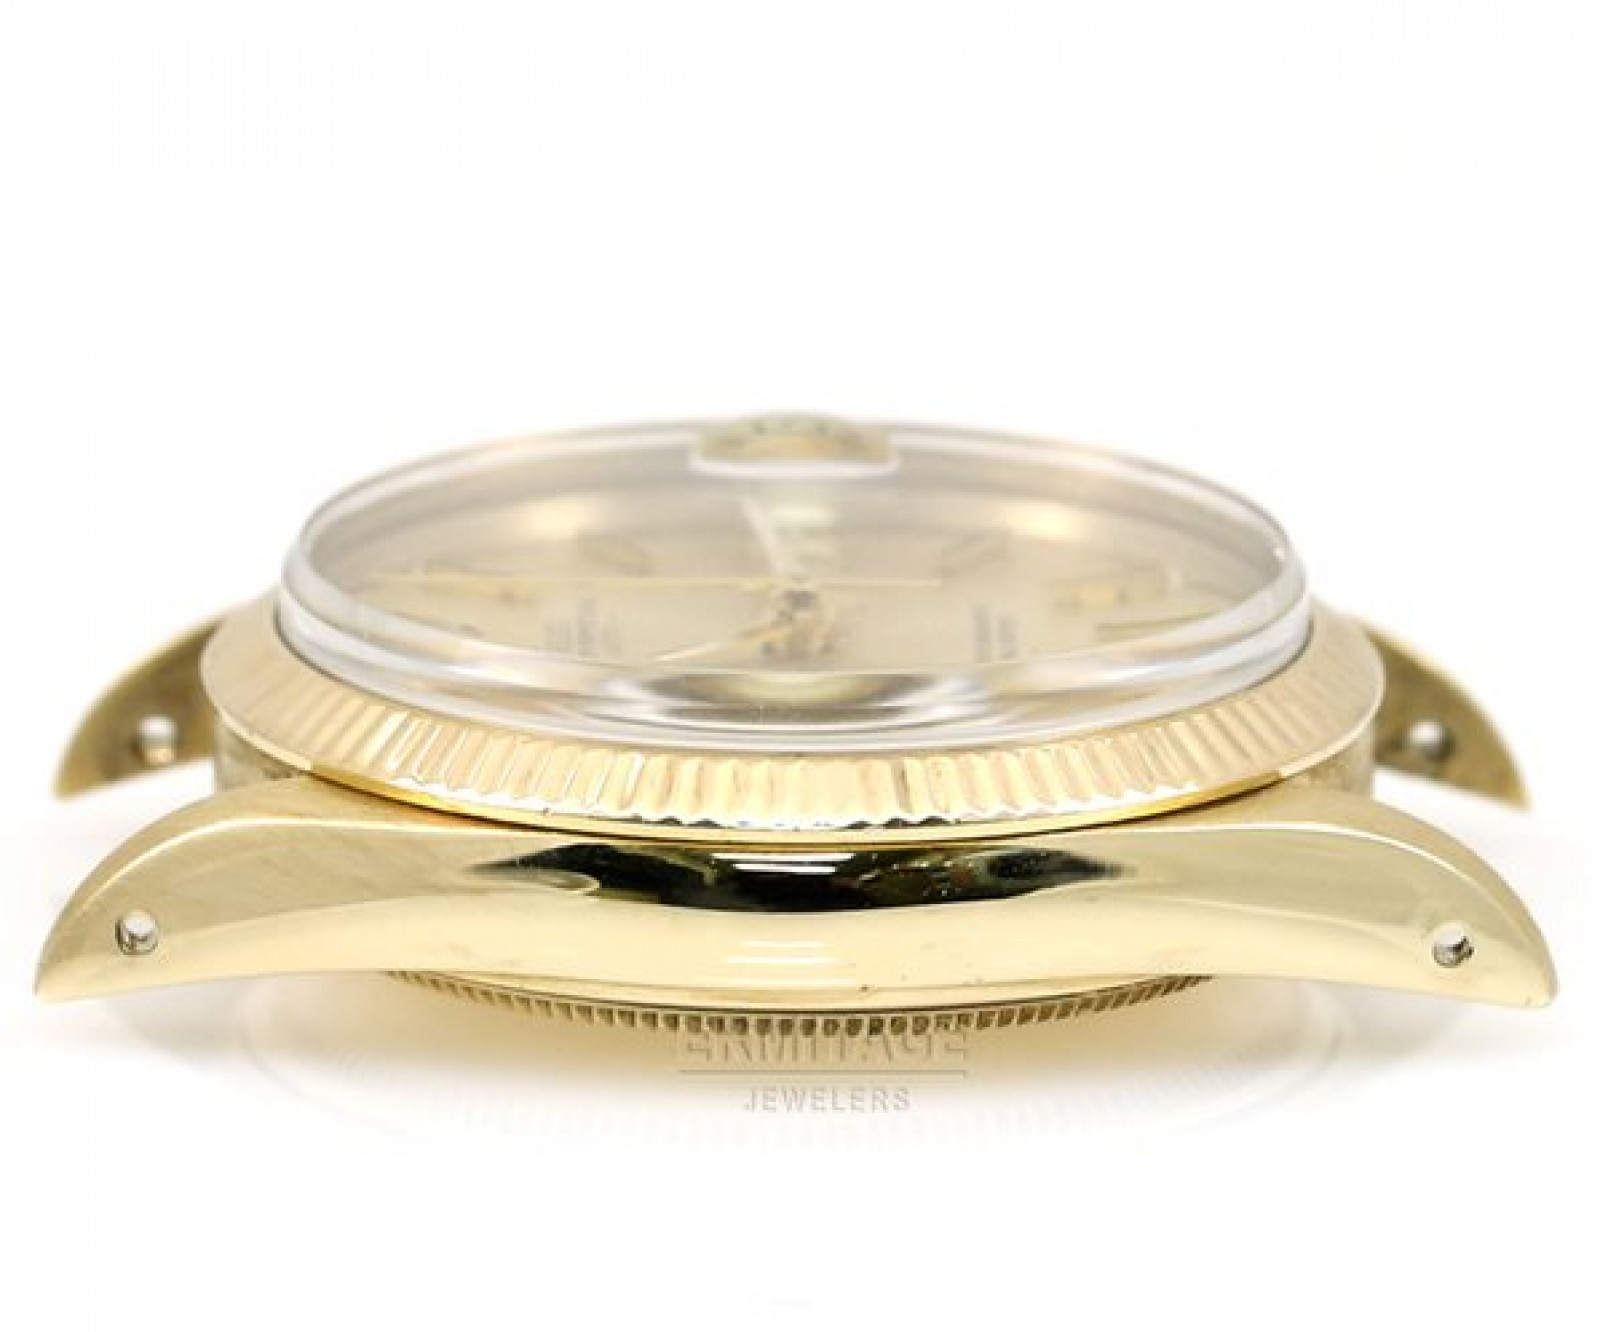 Pre-Owned Rolex Oyster Perpetual Date 15037